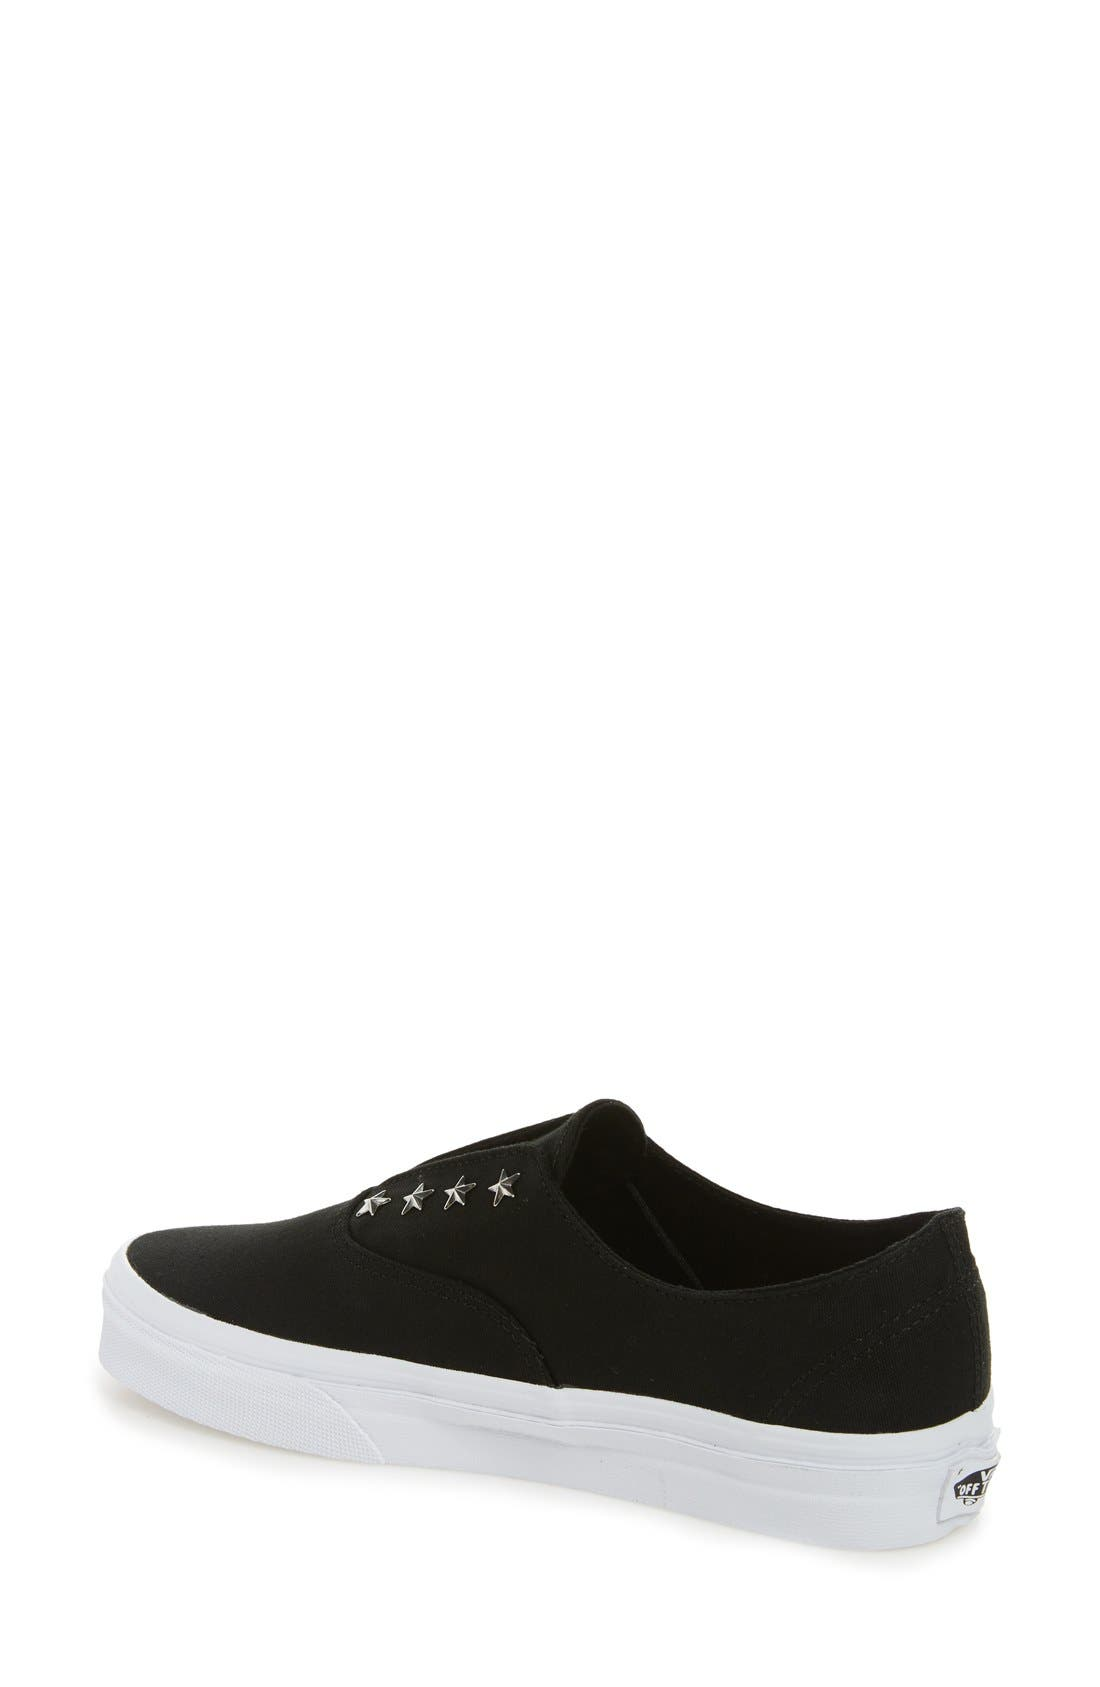 'Authentic' Studded Slip-On Sneaker,                             Alternate thumbnail 3, color,                             001